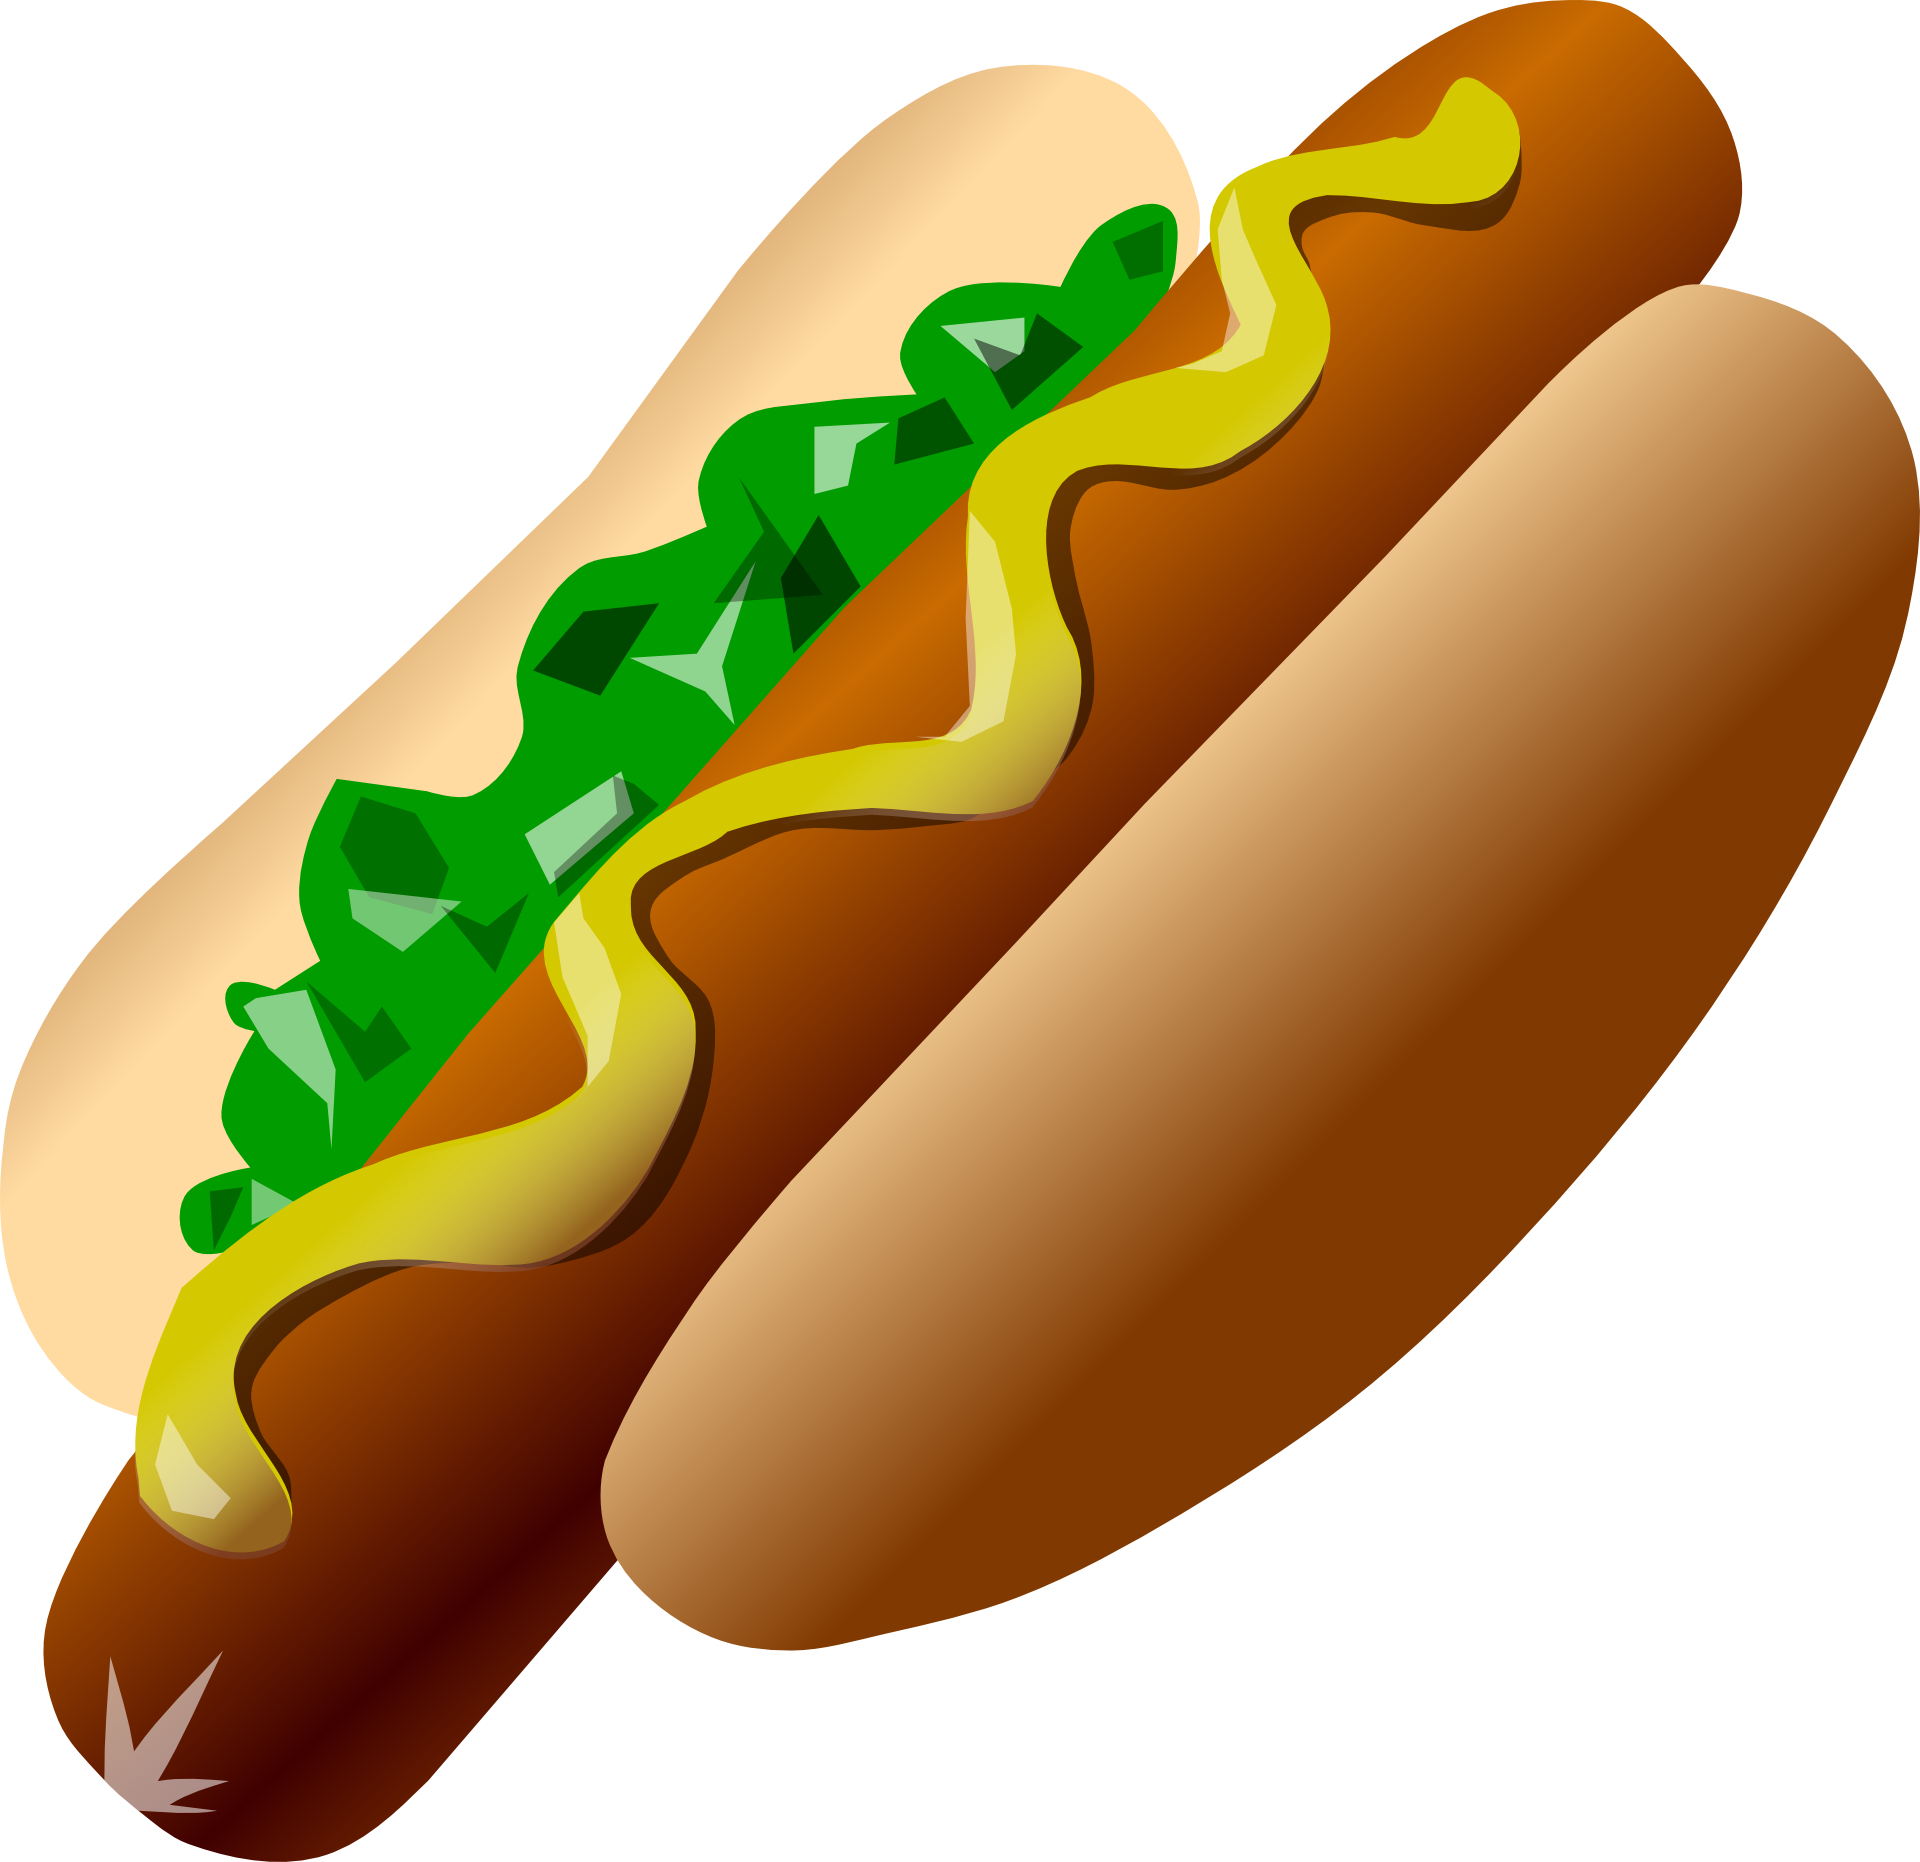 Delicious food,meat,ketchup,Hot Dog vector